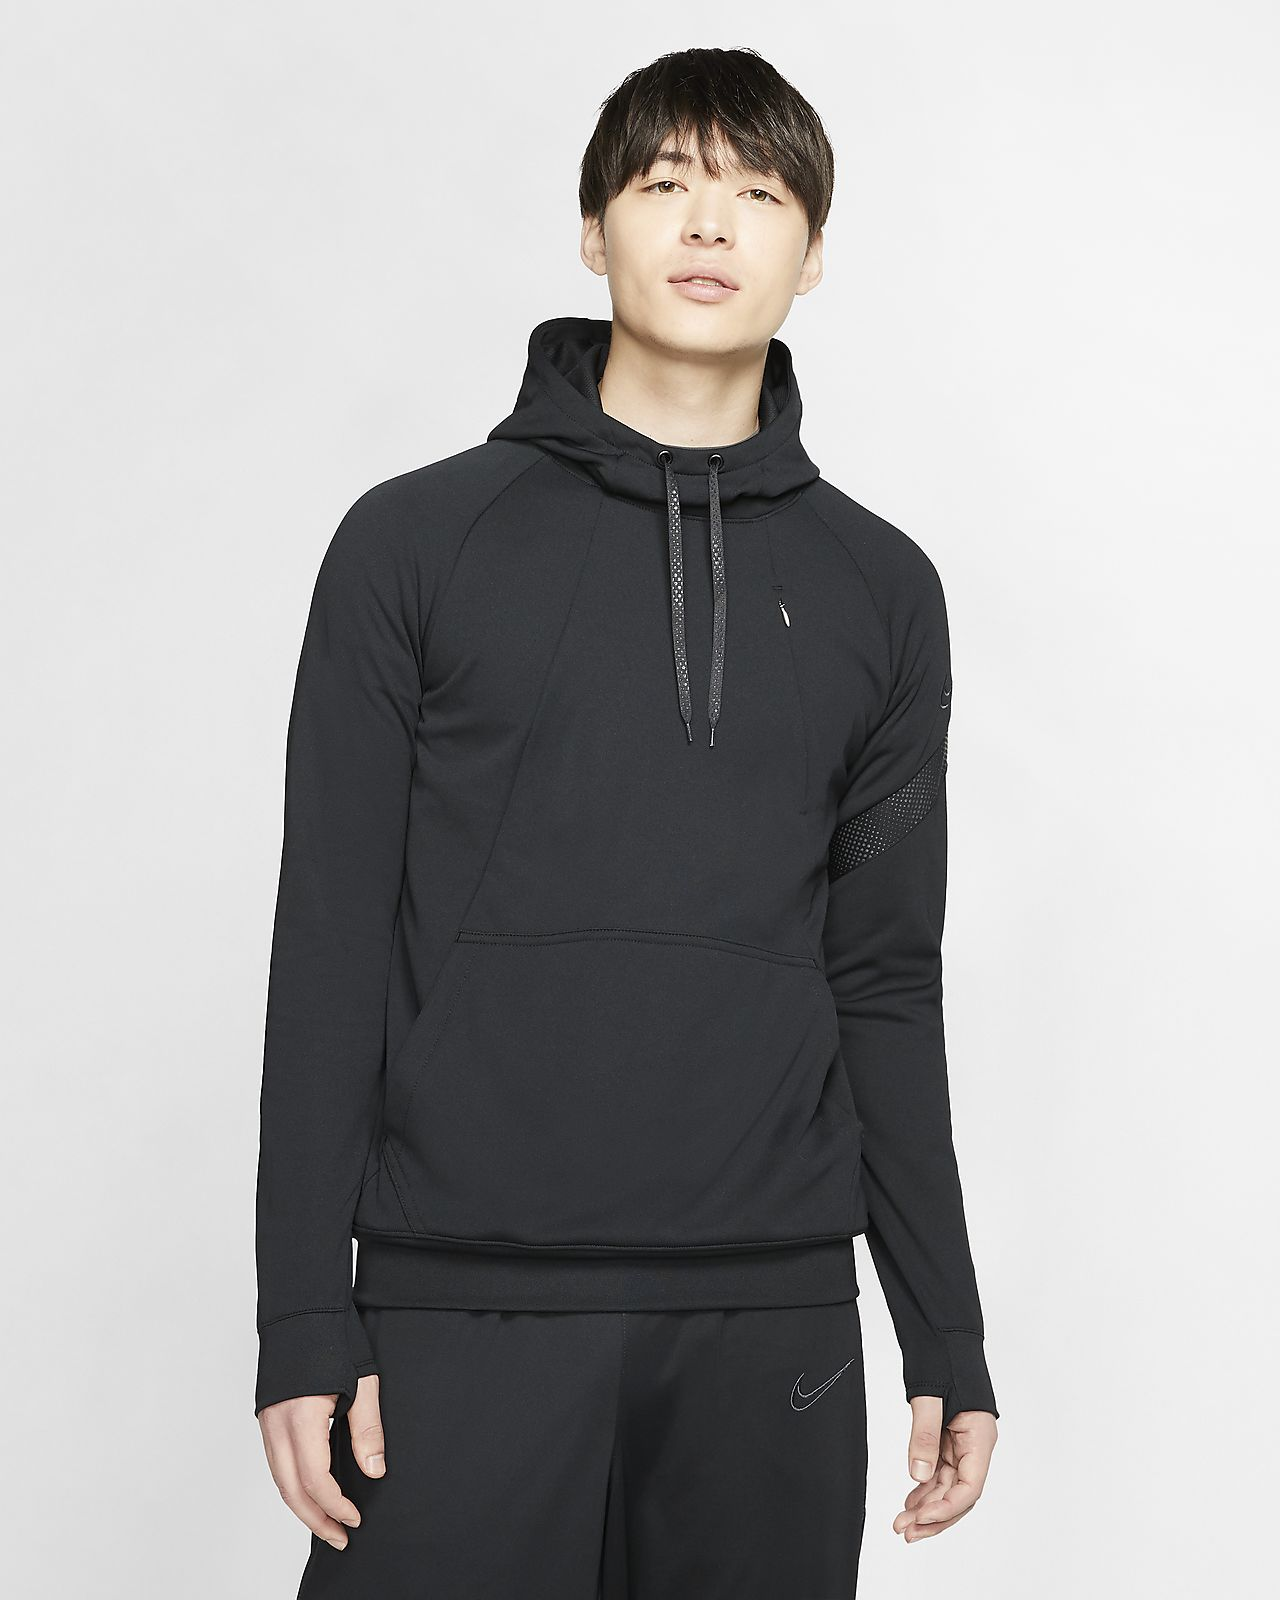 Nike Dri FIT Academy Pro Men's Pullover Soccer Hoodie